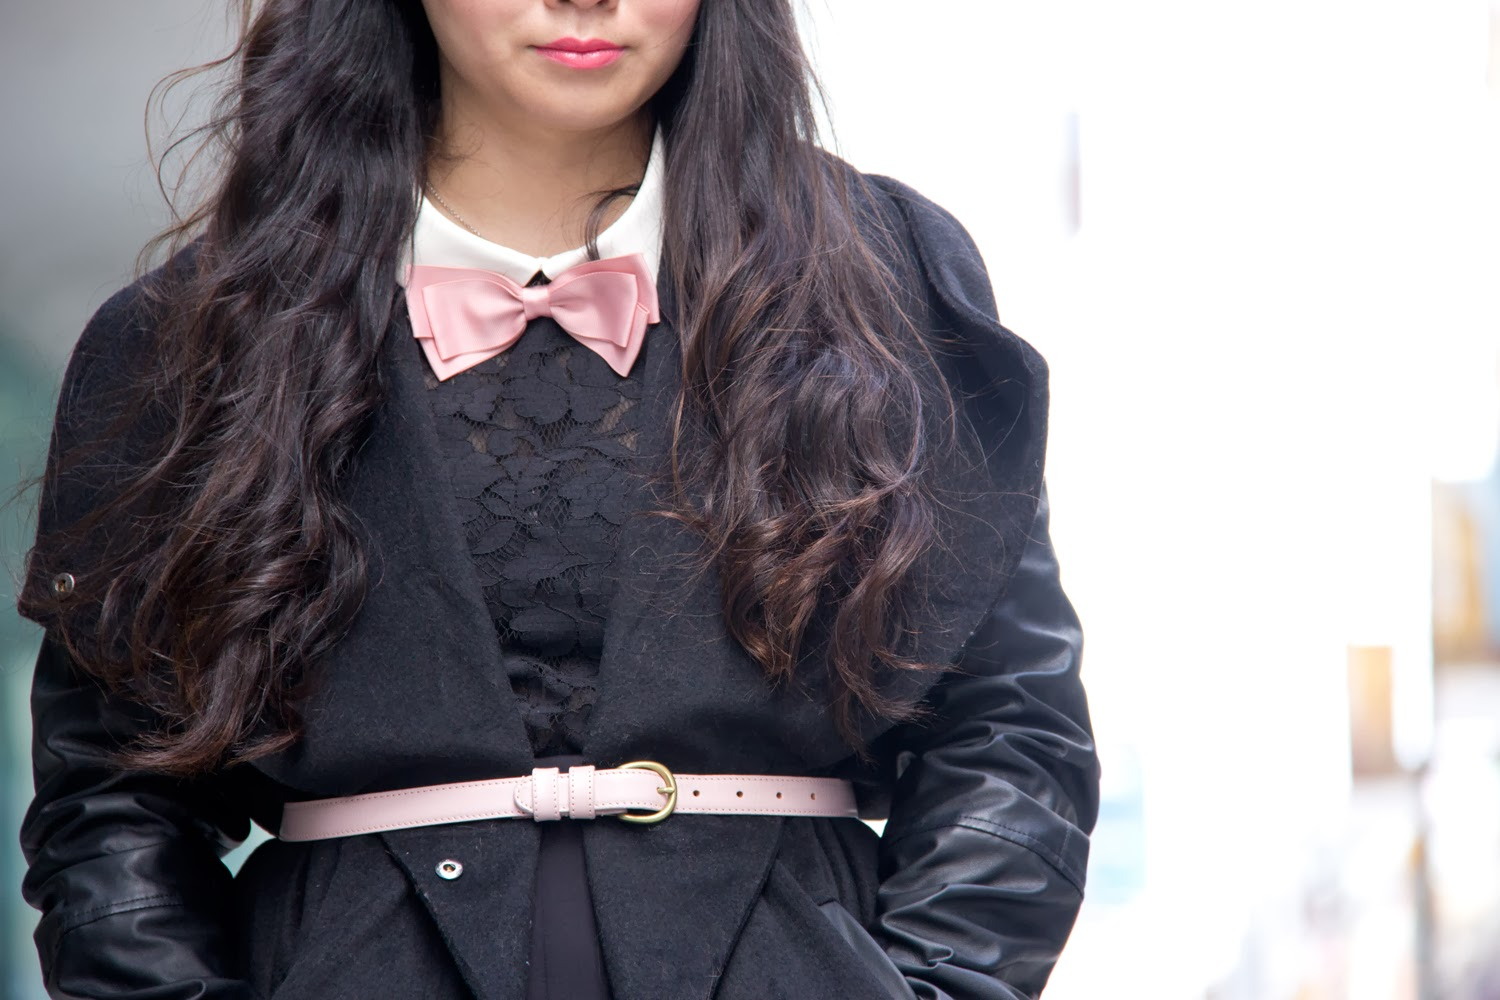 Black-Faux-Leather-Sleeve-Coat, American-Apparel-Pink-Belt, Bow-Tie, Lace-Top